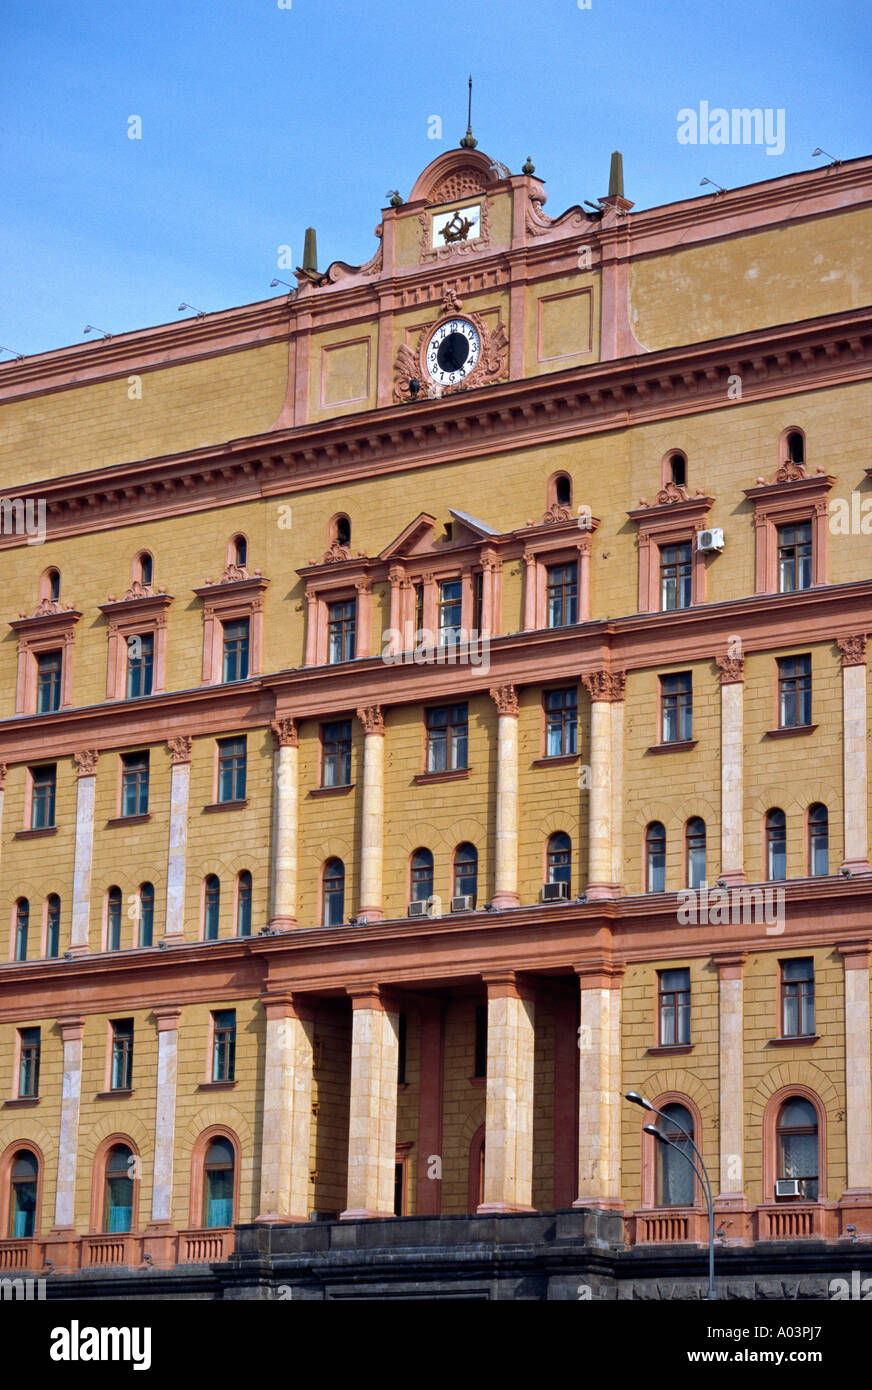 Former KGB headquarters, Lubianka square, Moscow, Russia - Stock Image